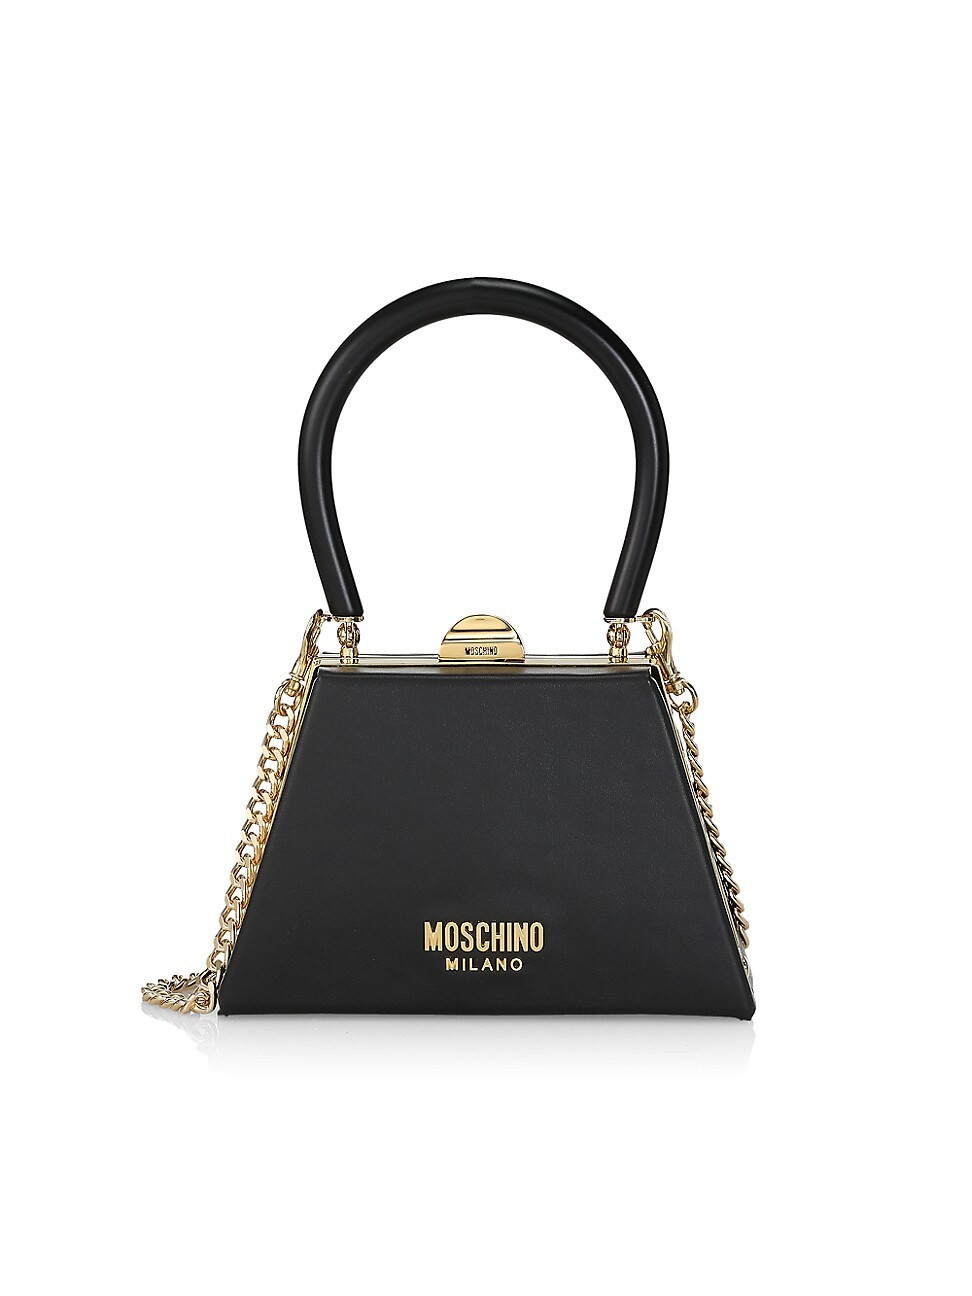 Moschino Leathers WOMEN'S FRAME LEATHER SHOULDER BAG